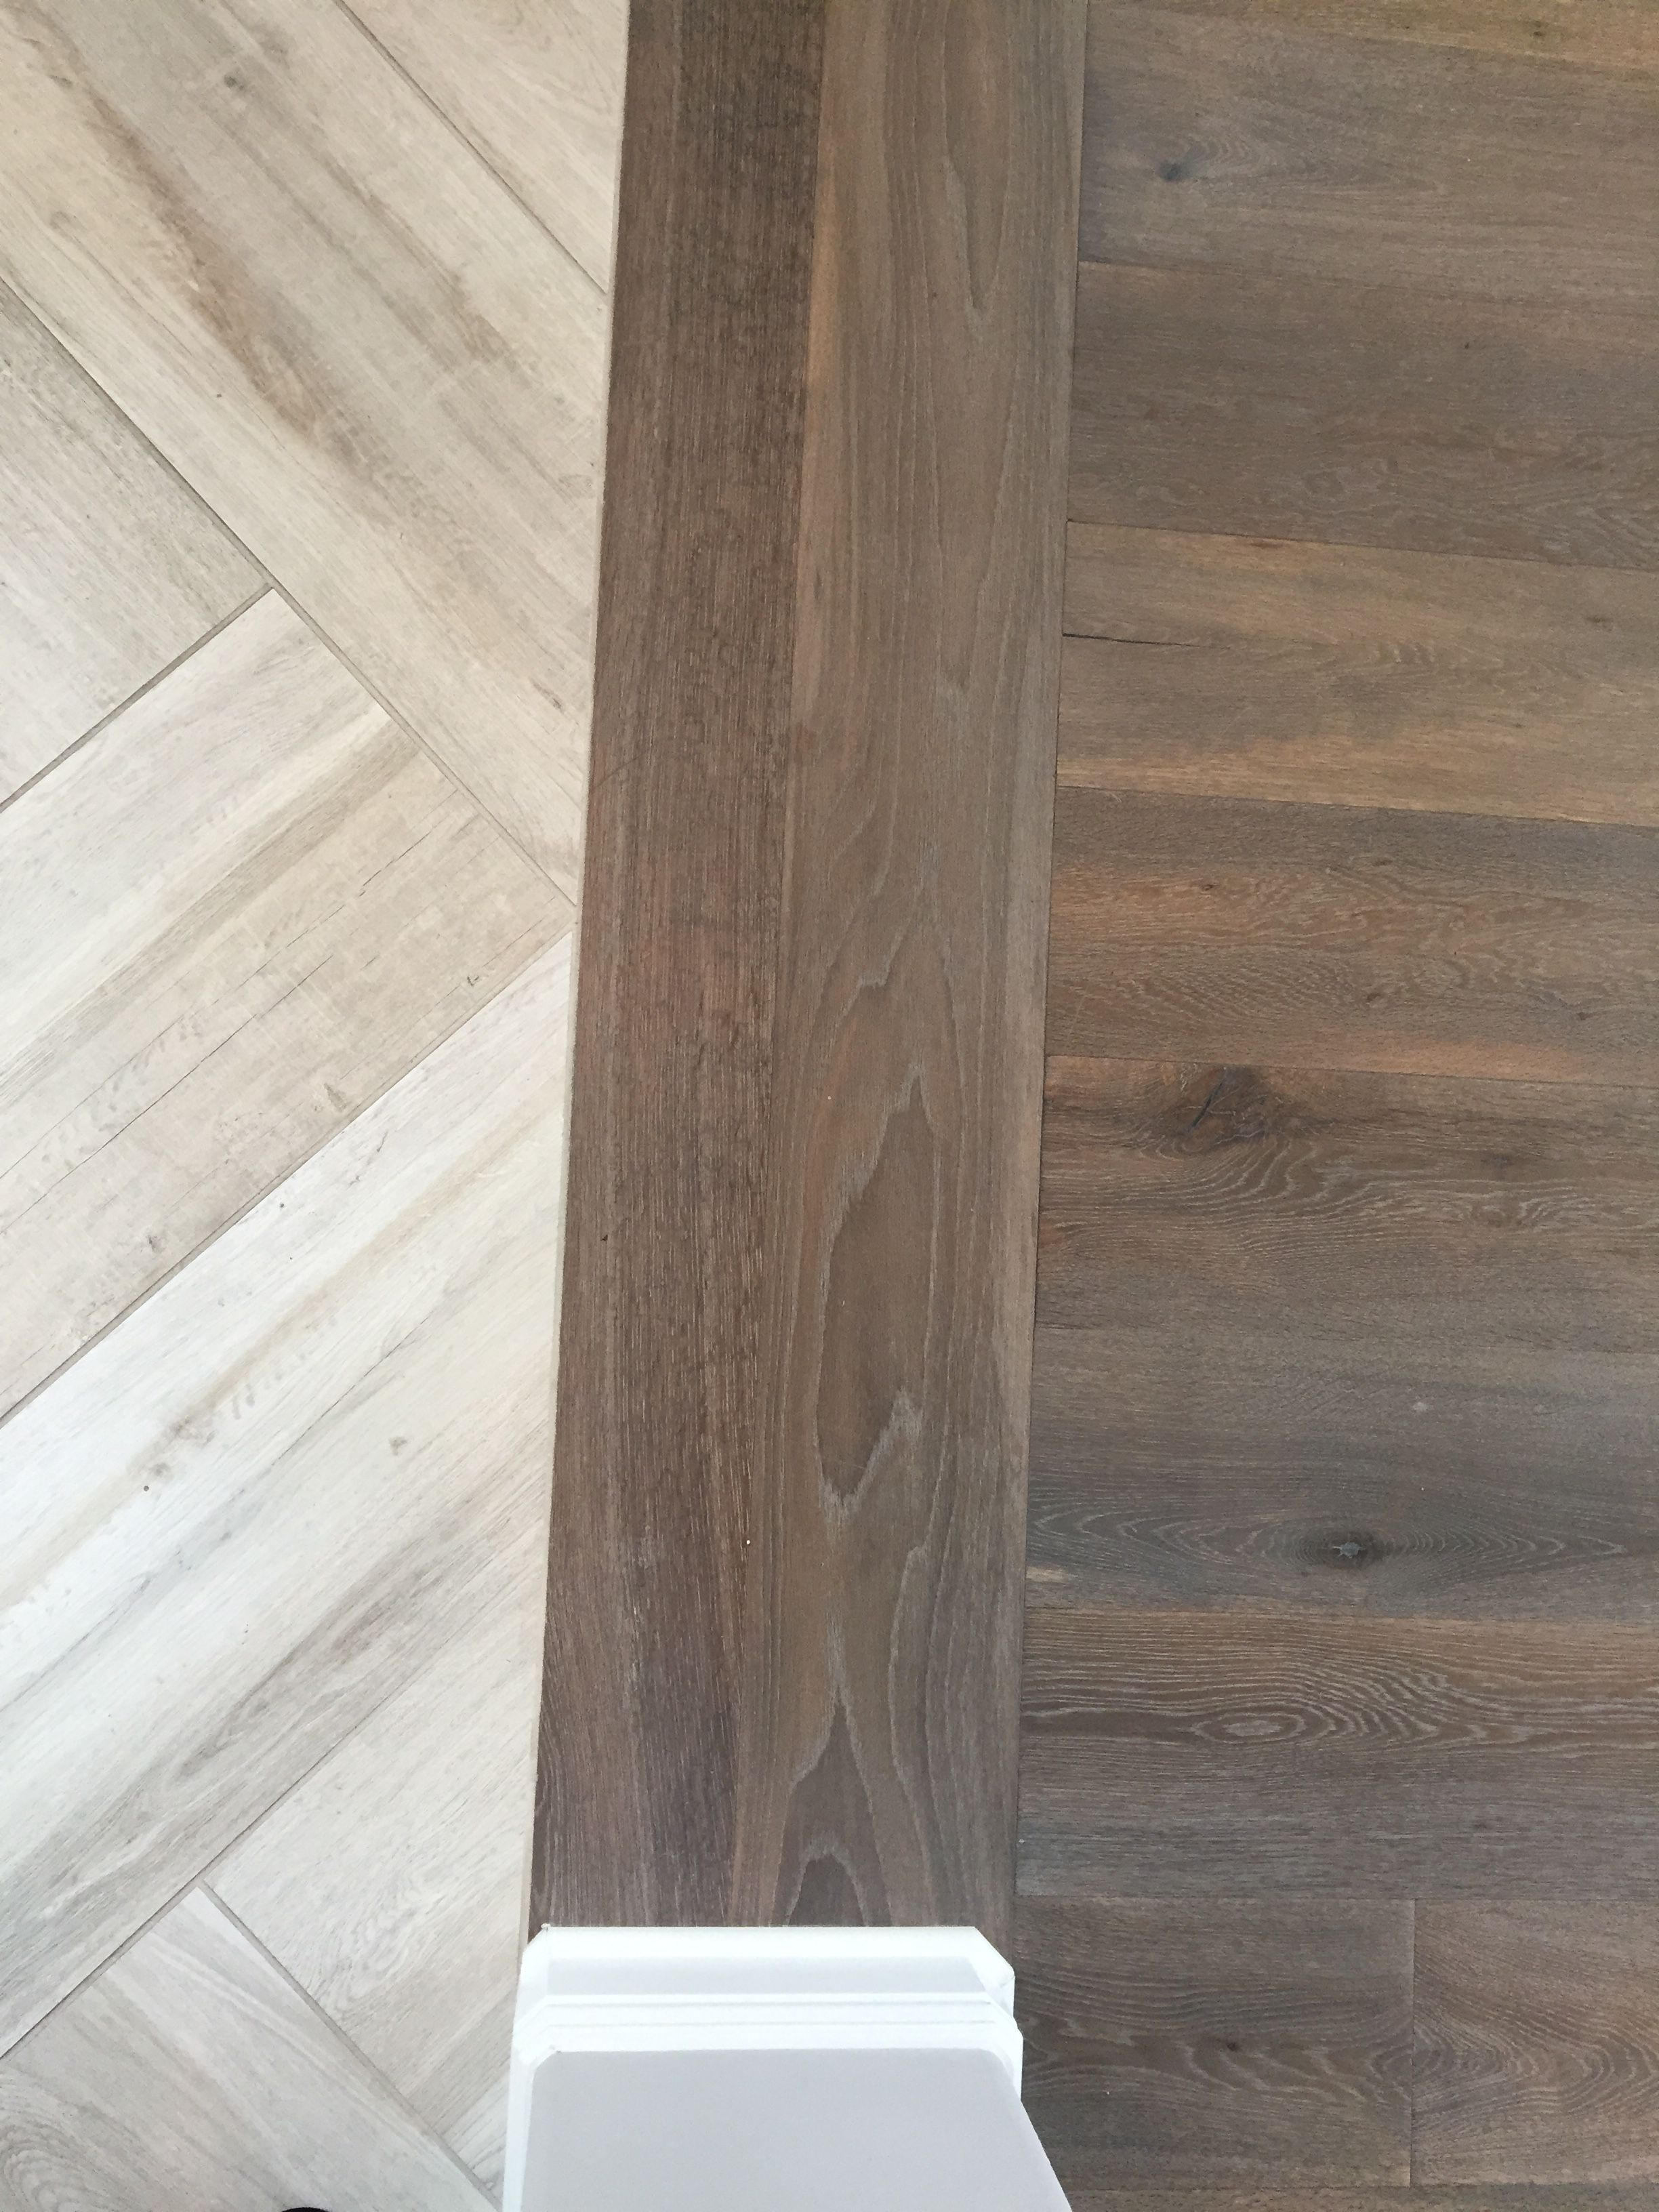 Floor transition laminate to herringbone tile pattern model lighter color wood though floor transition laminate to herringbone tile pattern dailygadgetfo Choice Image